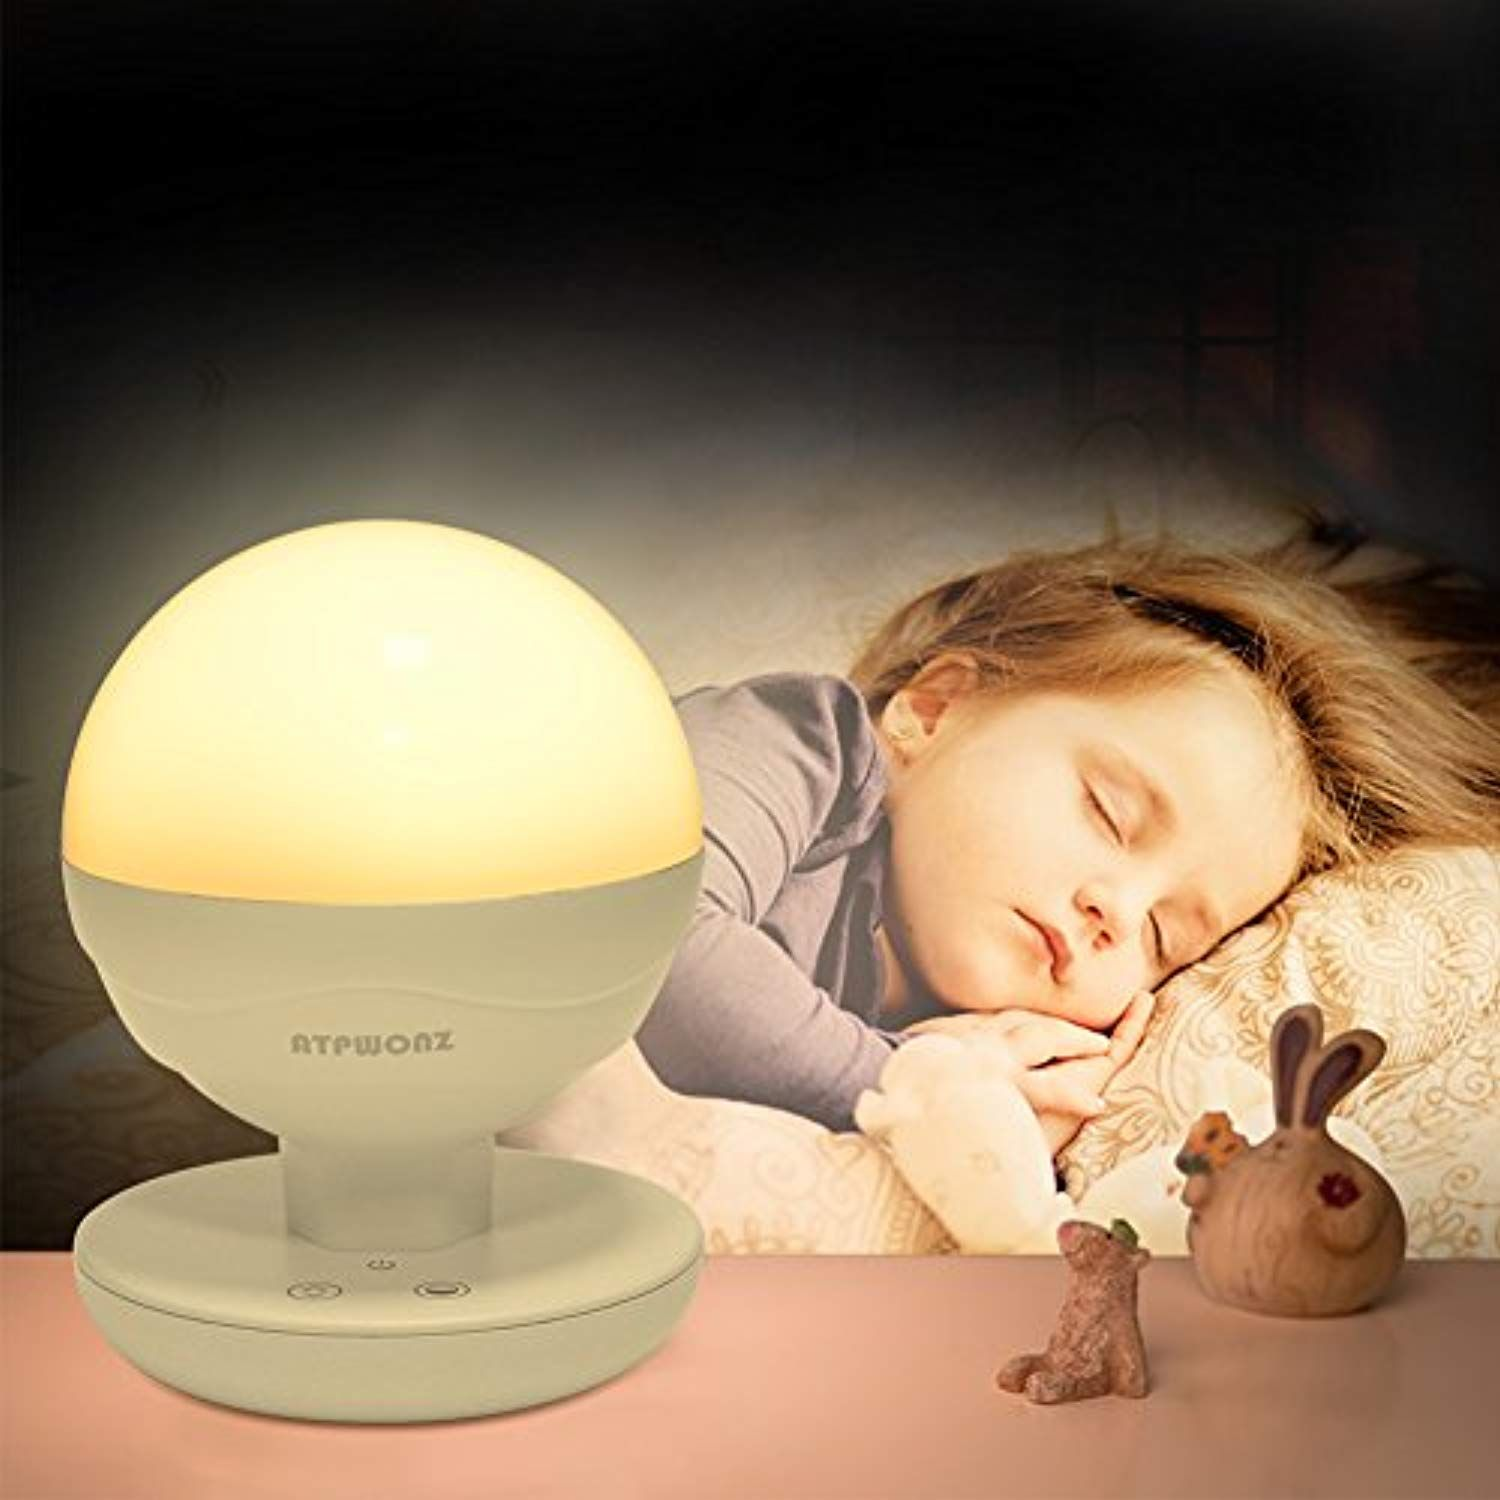 Atpwonz Led Night Lights For Kids Nursery Nightlight Bedside Lamp For Breastfeeding With Touch Control Night F Night Light Kids Nursery Night Light Night Light